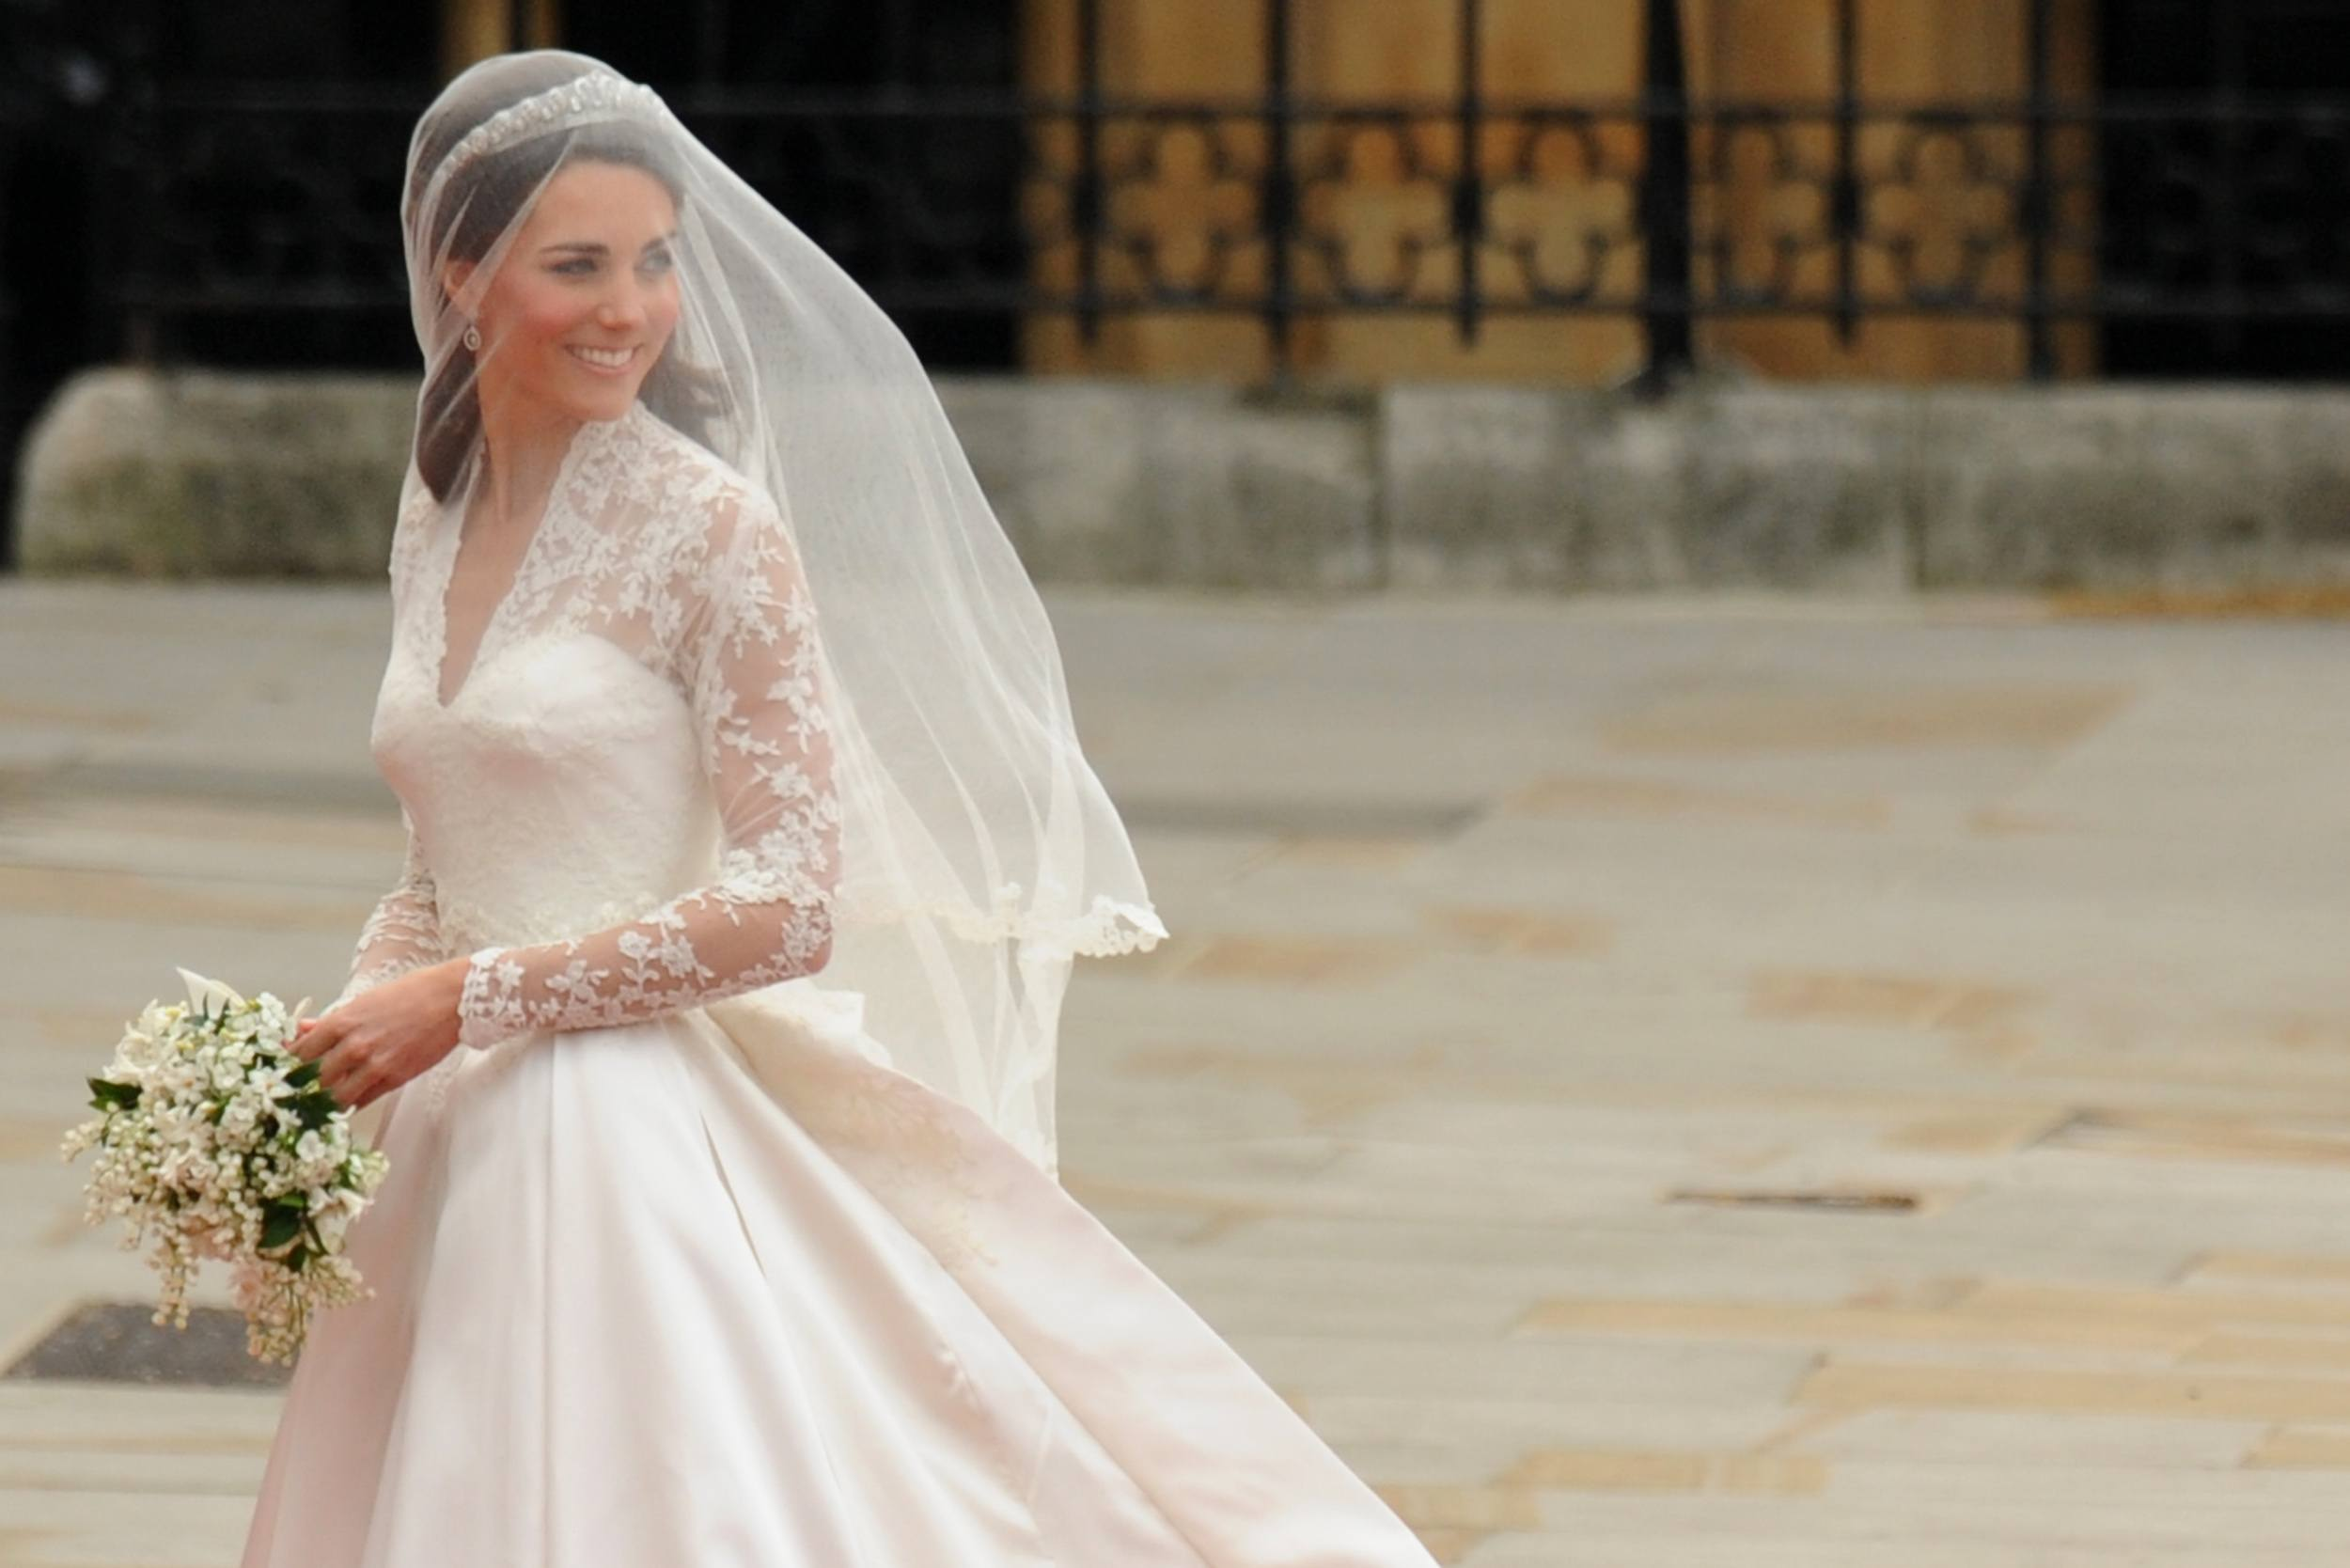 Here's Kate Middleton's Second Wedding Dress You Never Got